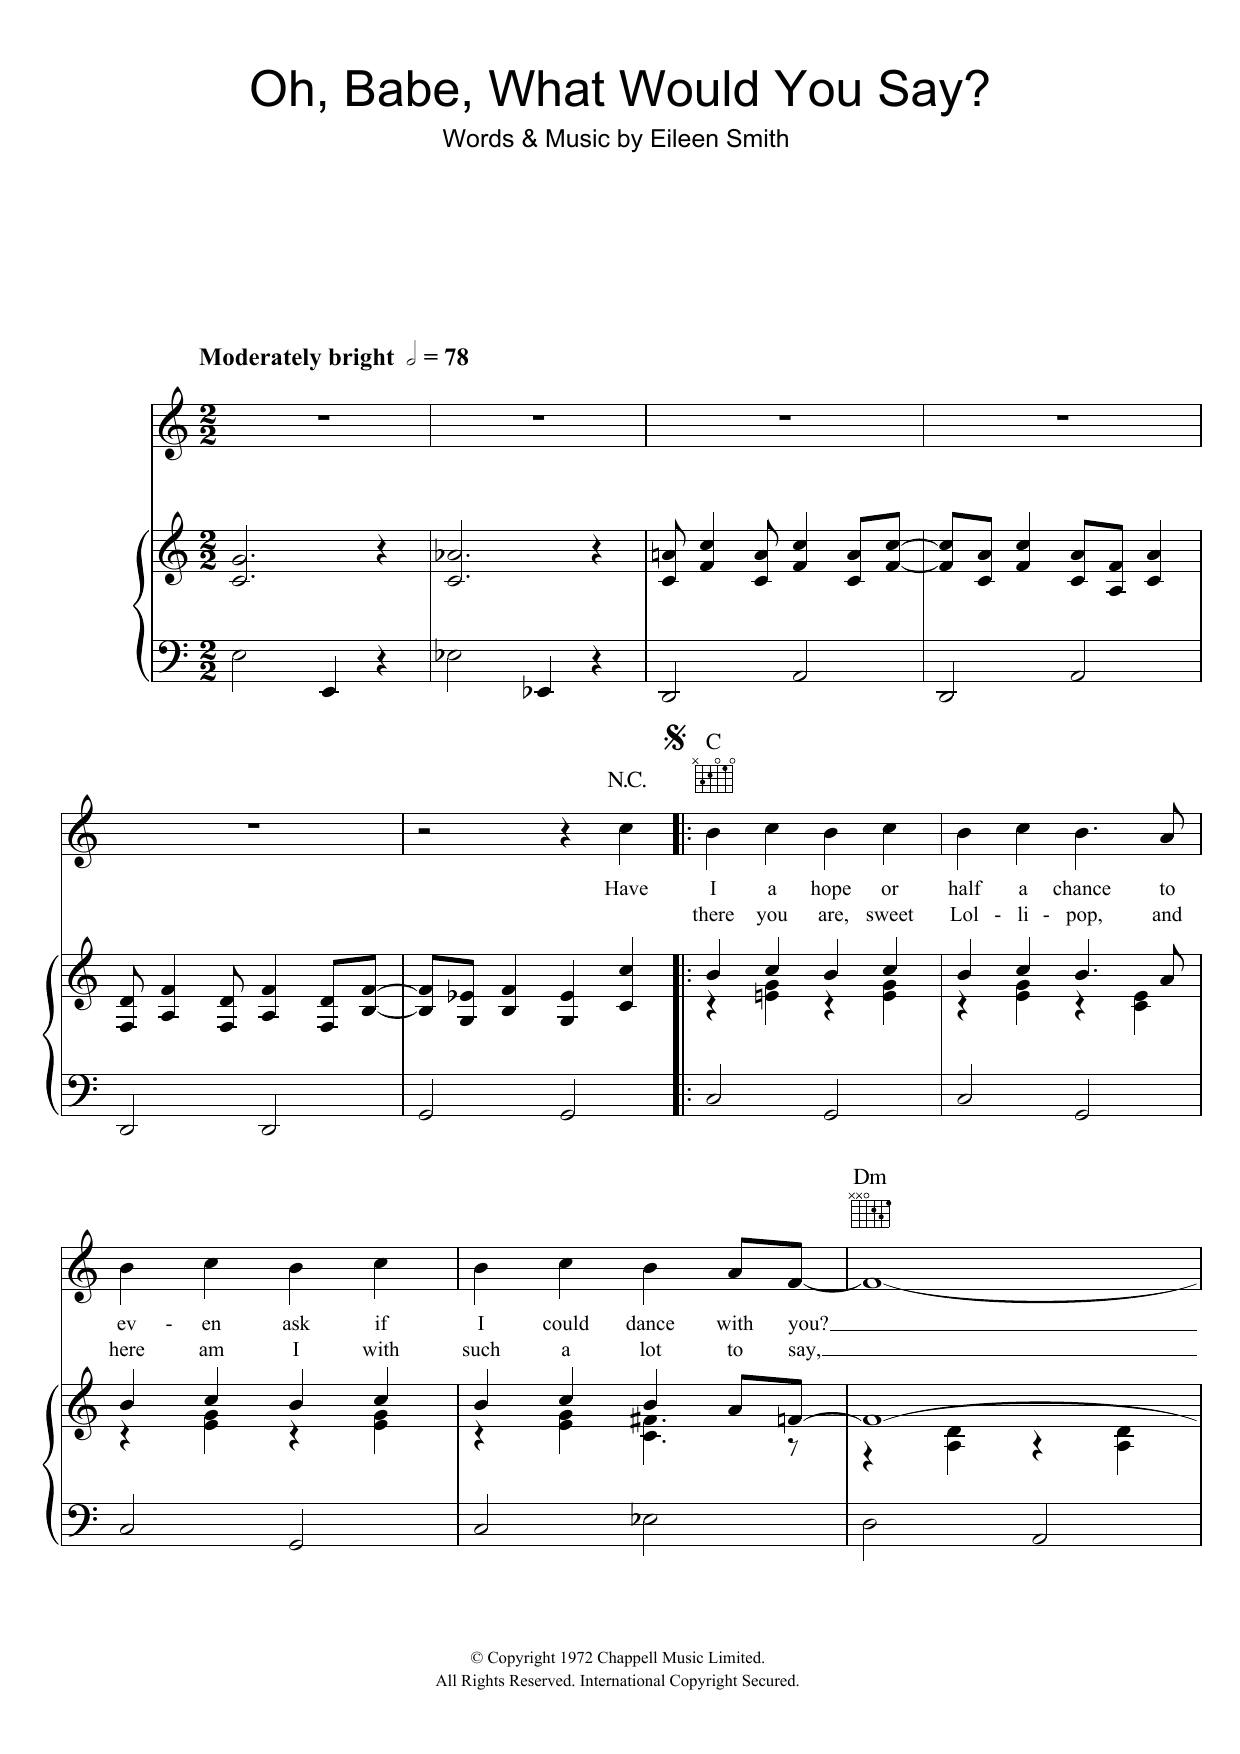 Oh, Babe, What Would You Say? sheet music